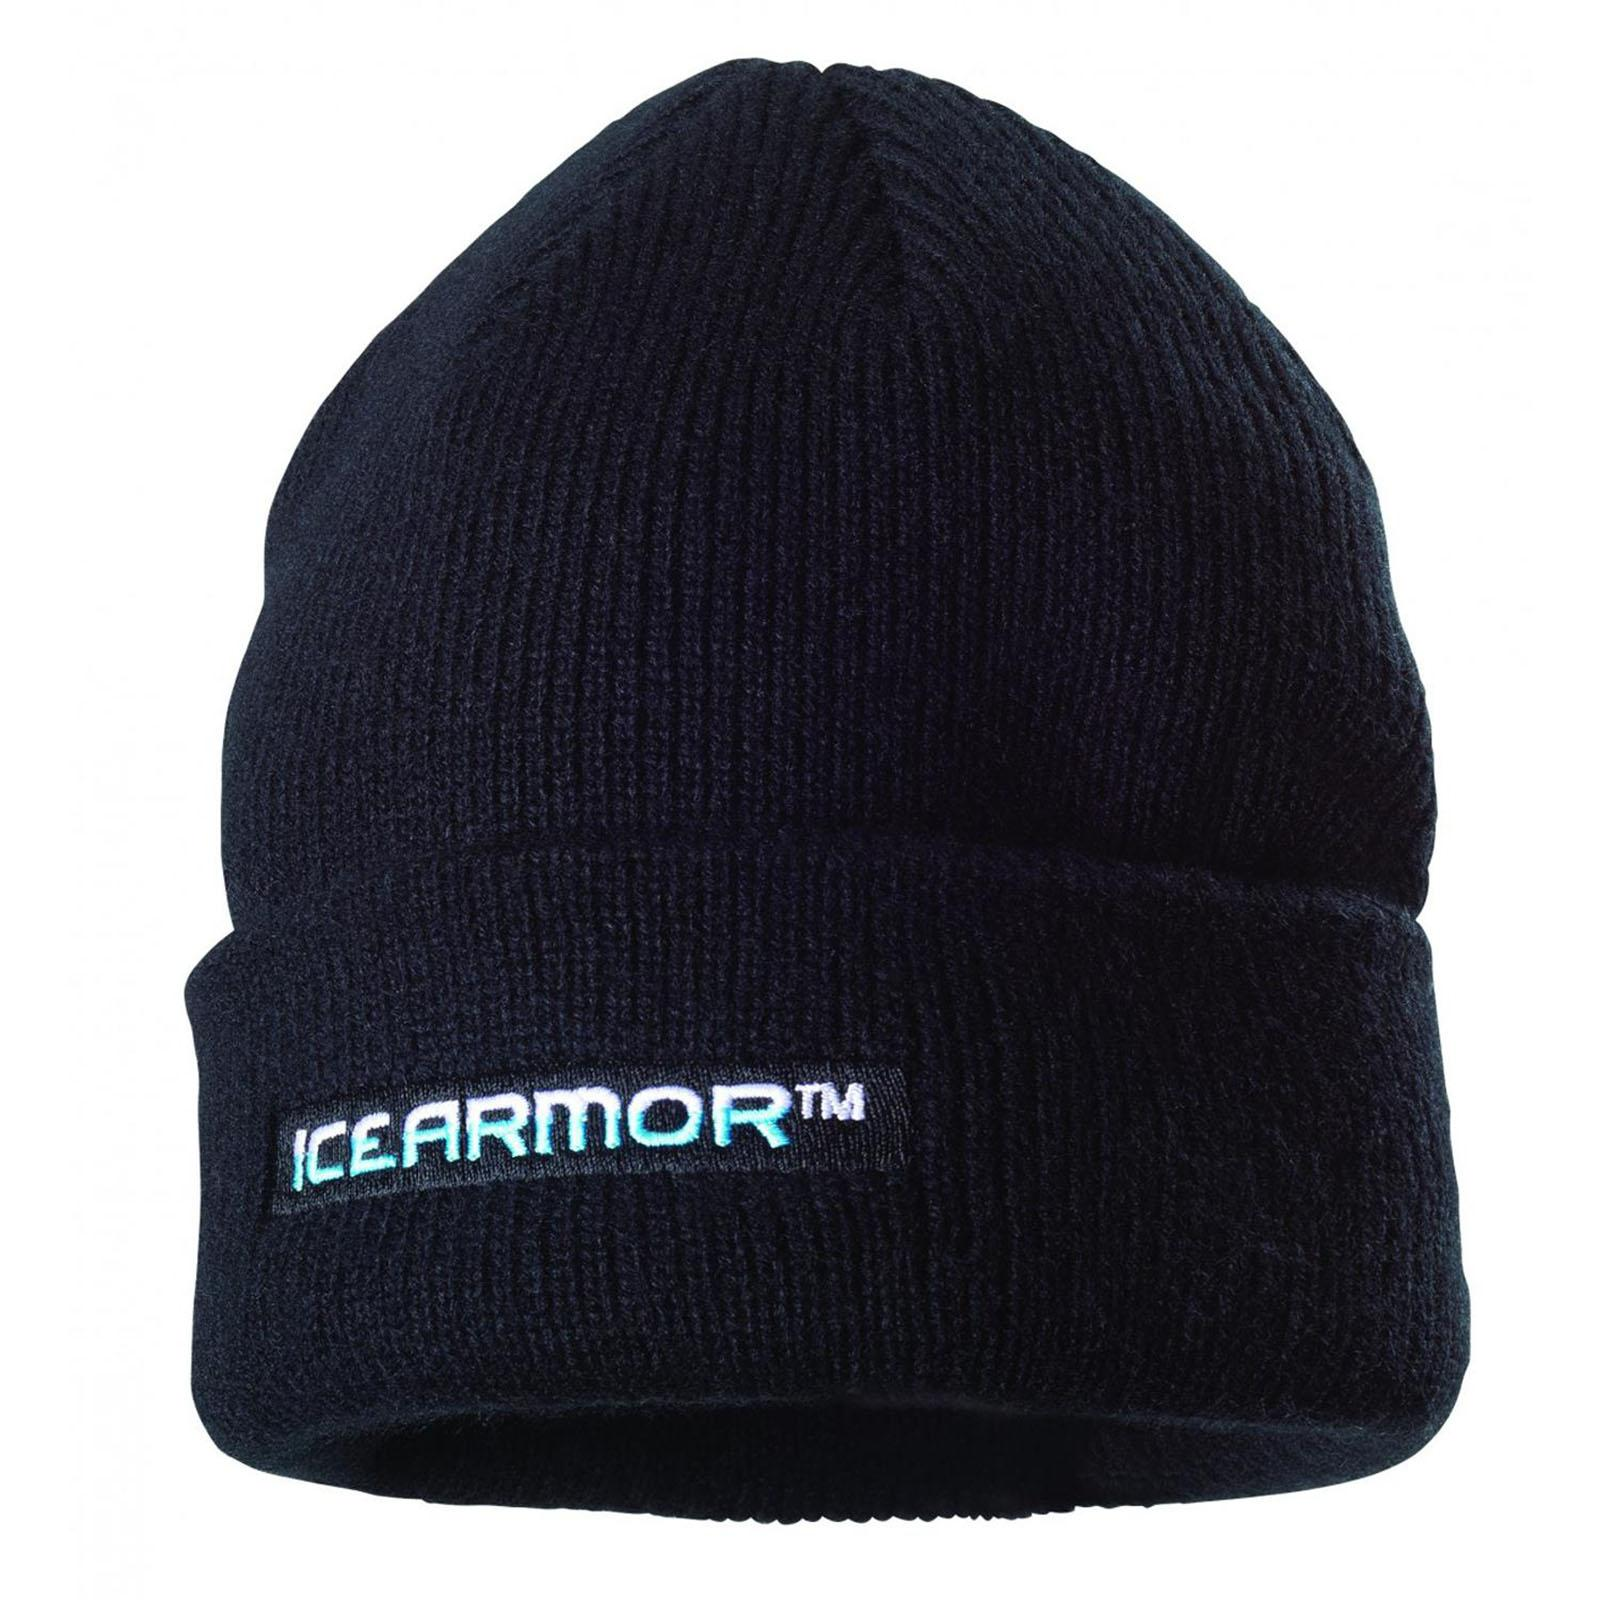 IceArmor Knit Toque